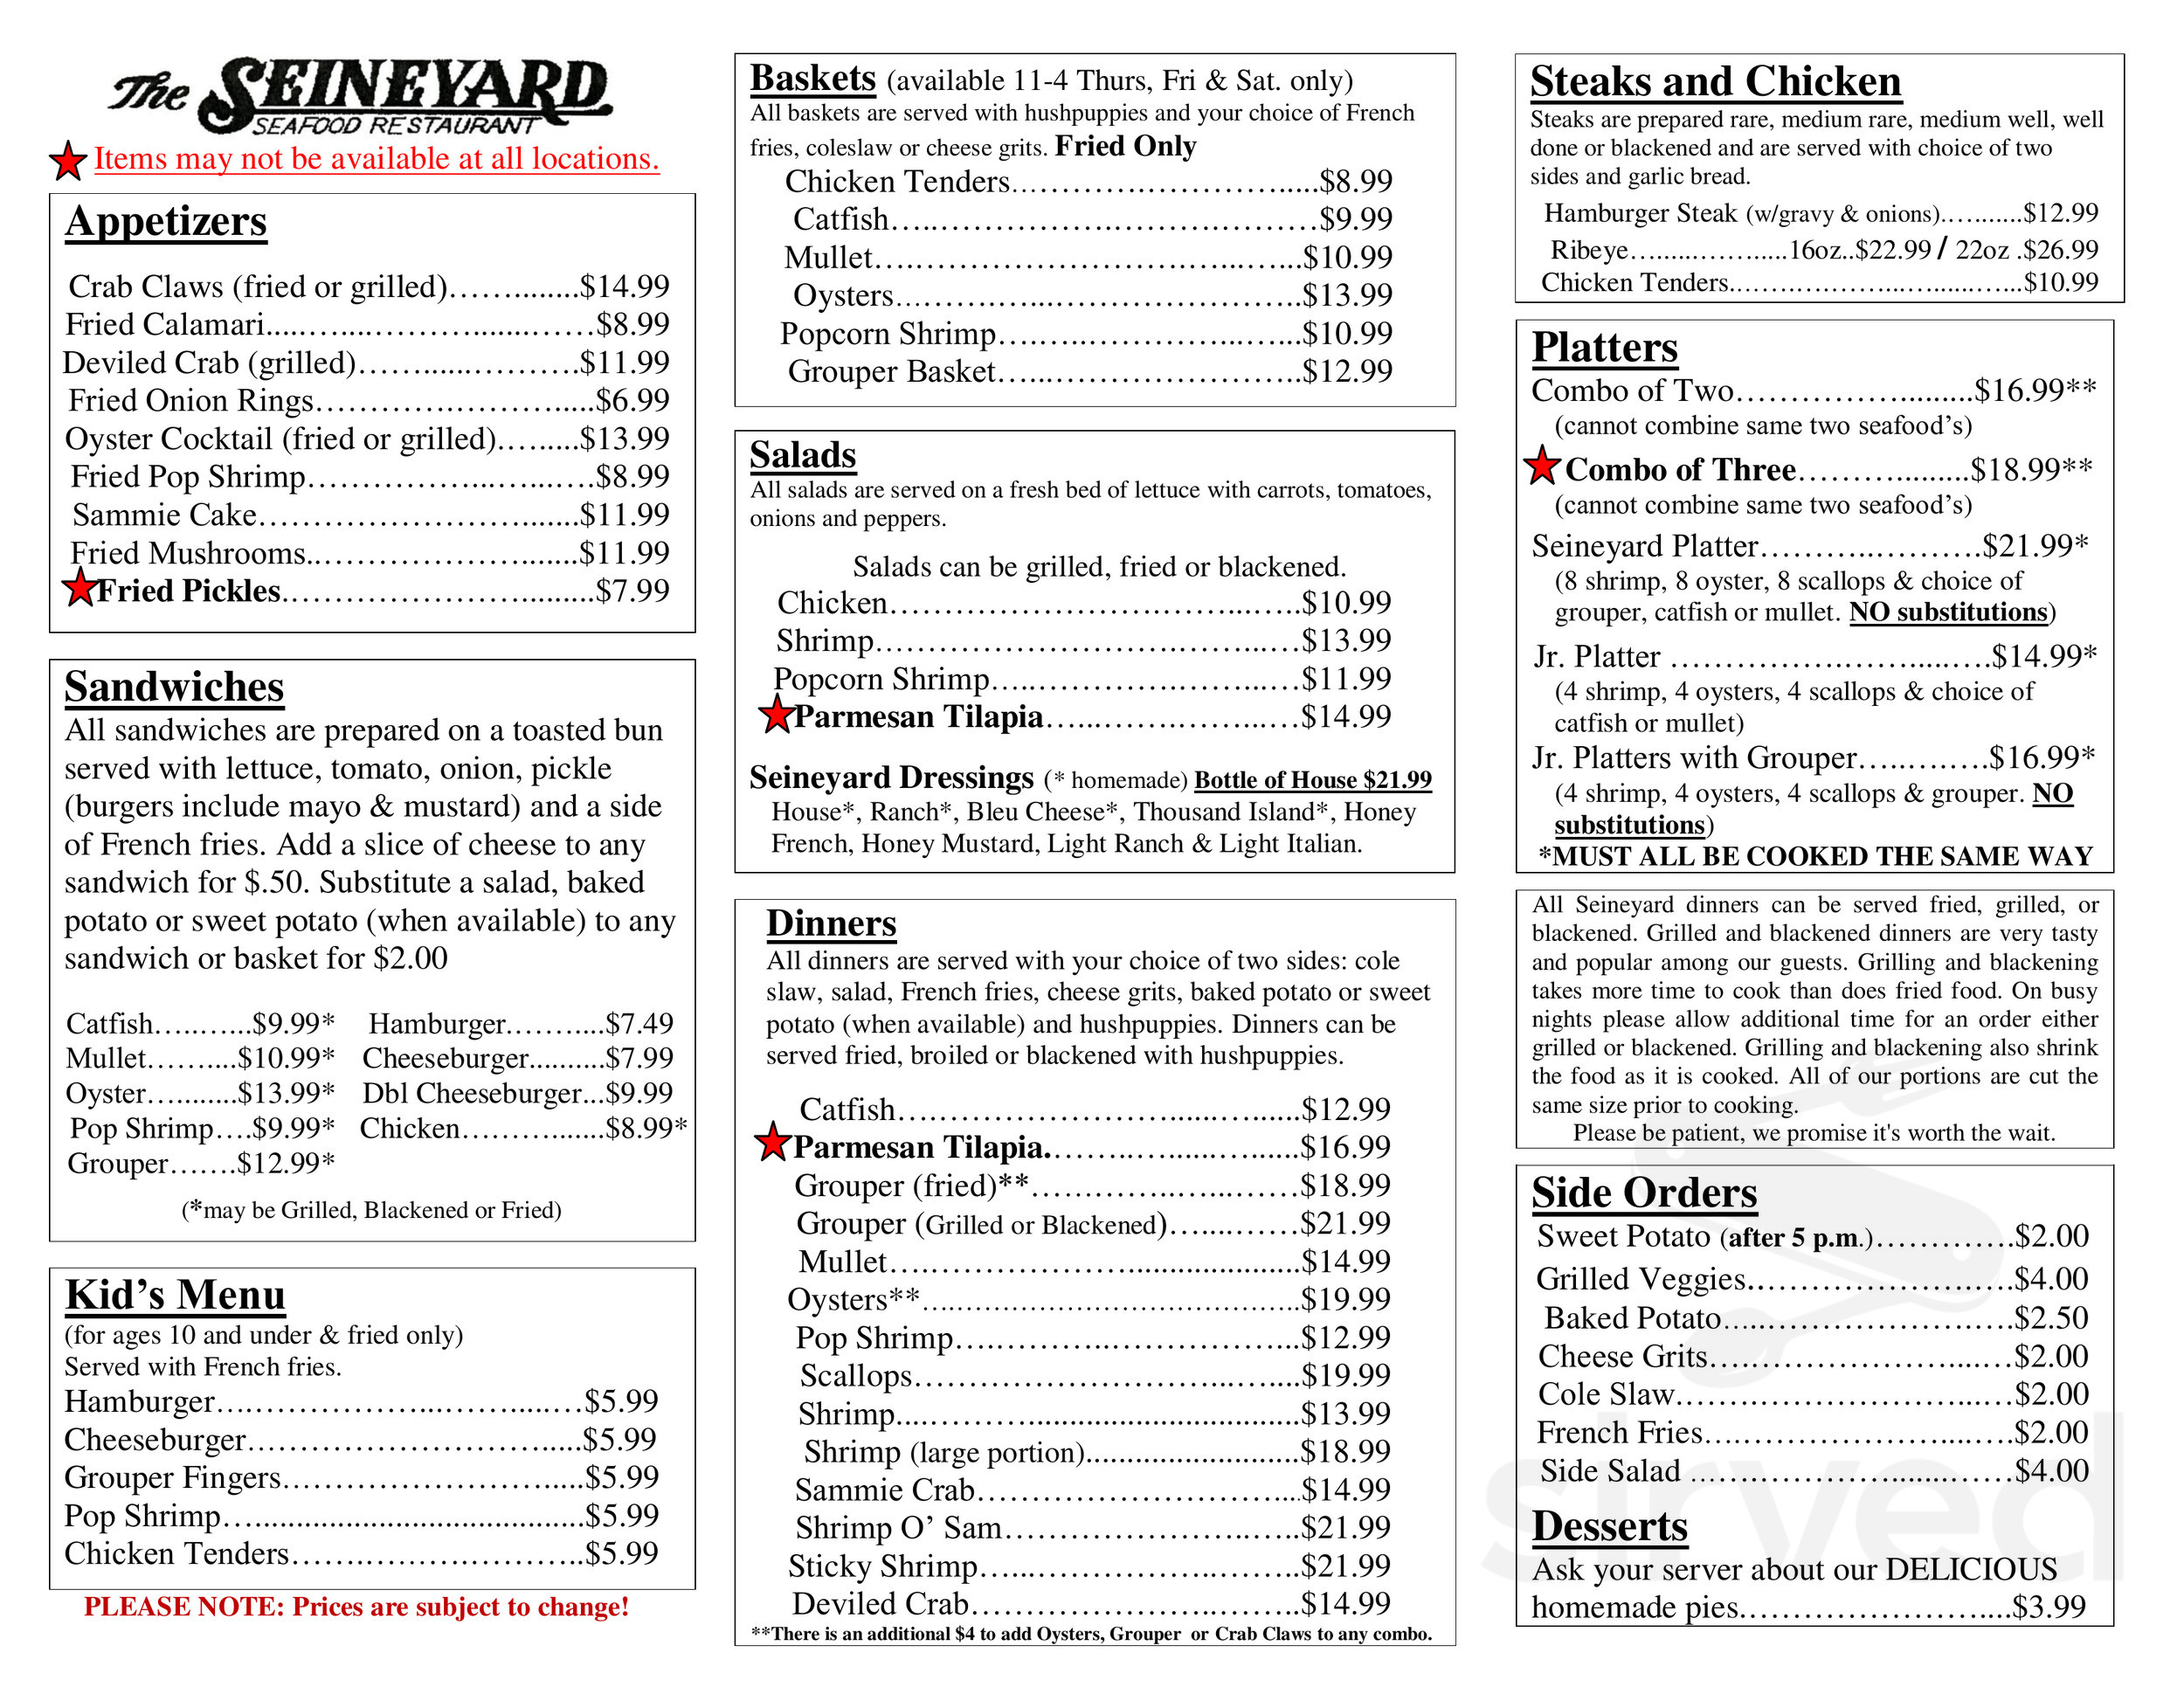 Menu For The Other Seineyard Seafood Restaurant In